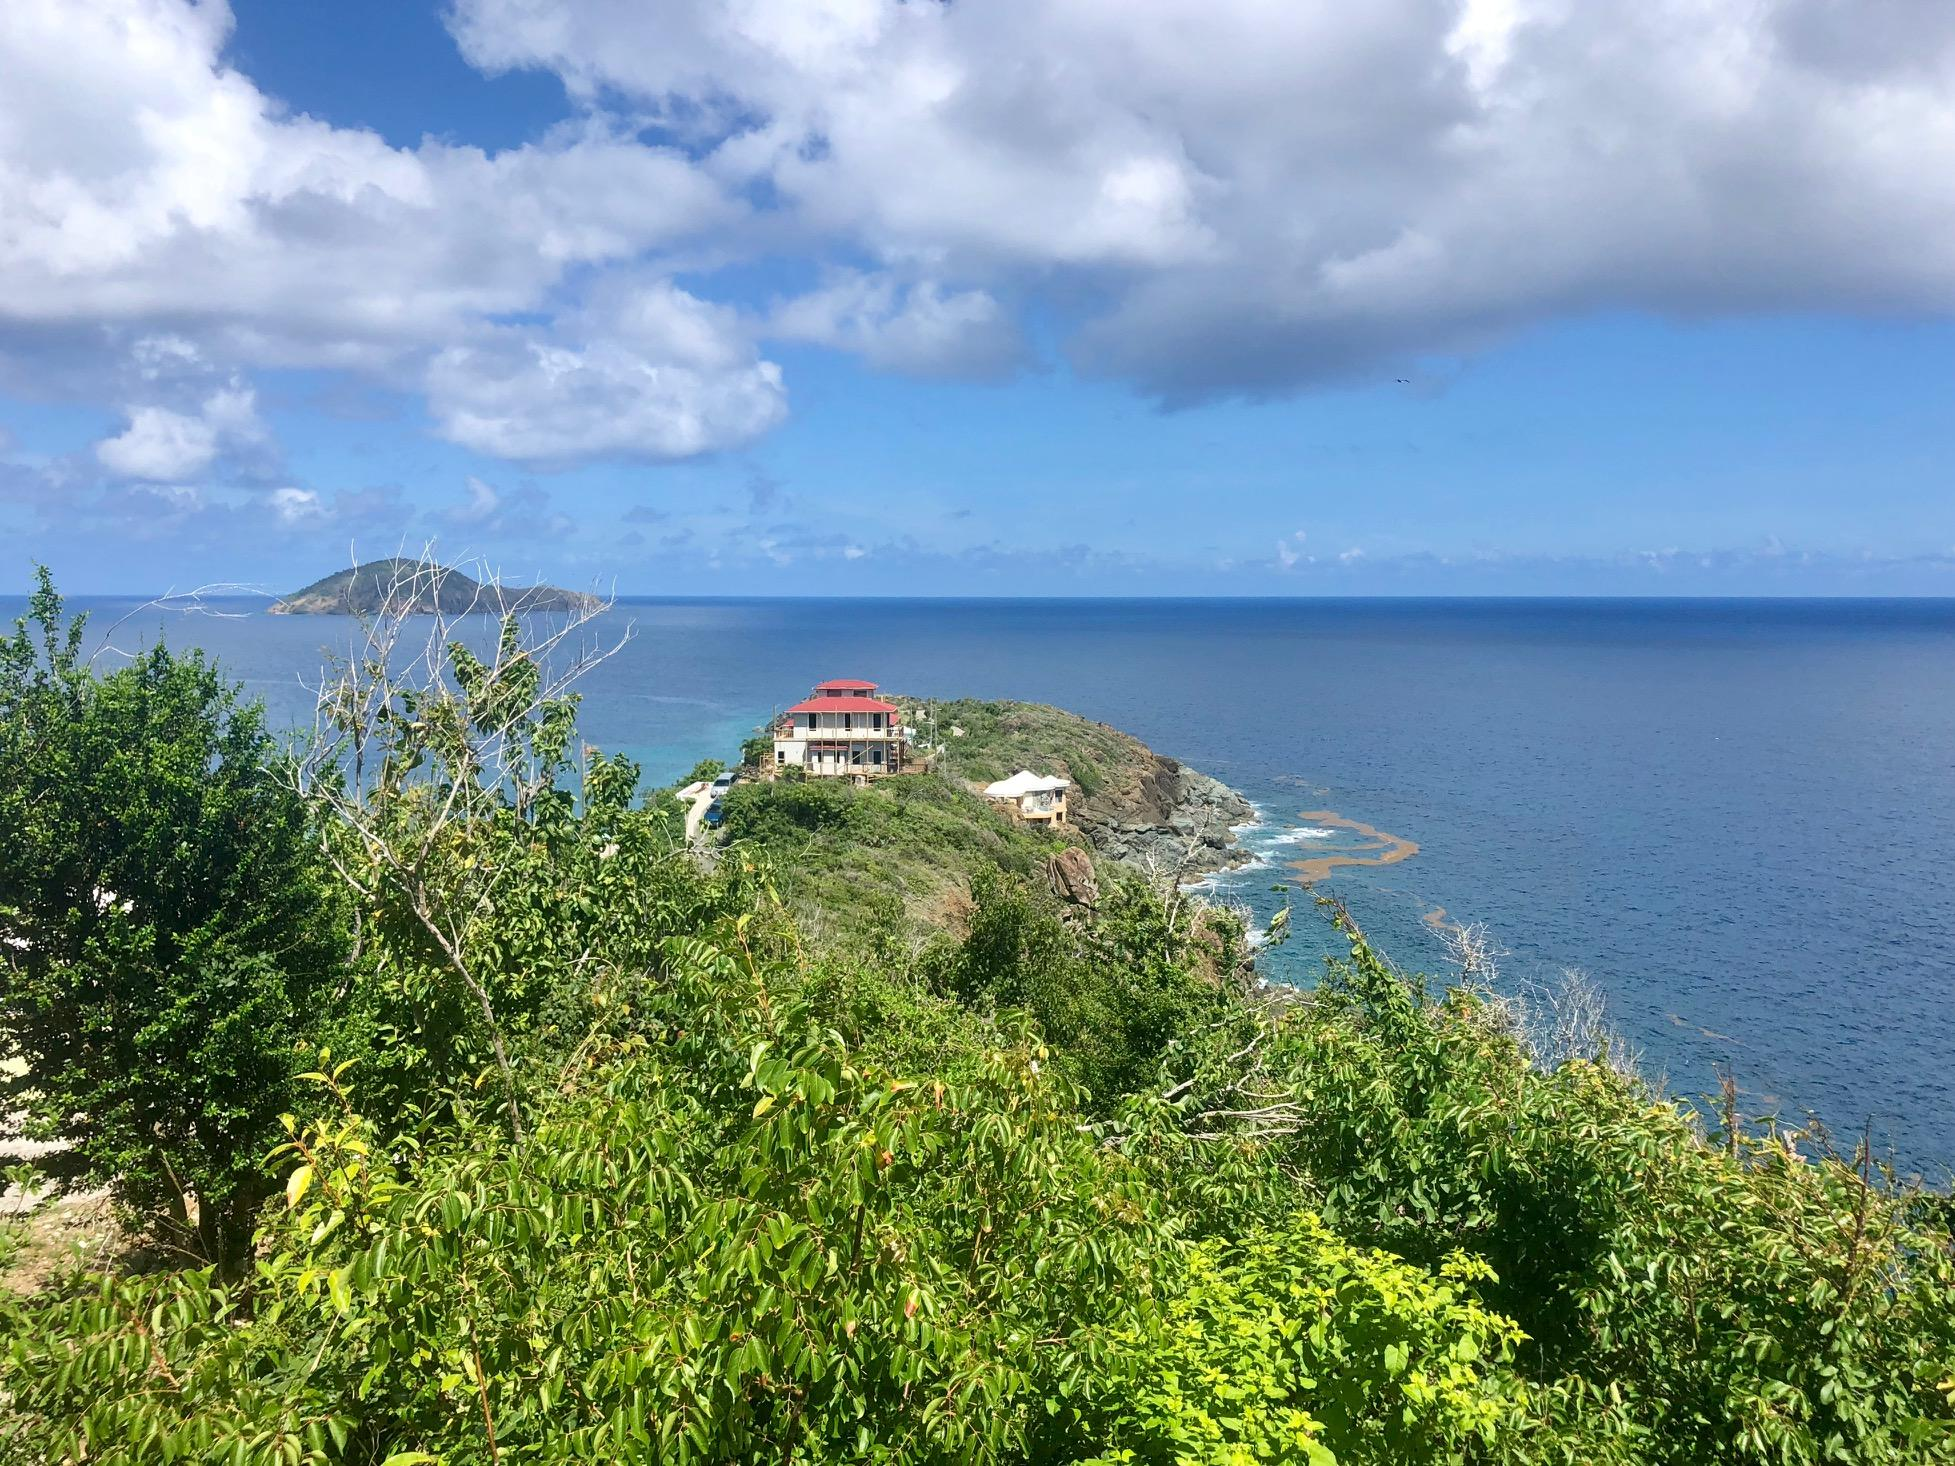 RE/MAX real estate, US Virgin Islands, Peterborg, New Listing  LotsAcres  Peterborg GNS